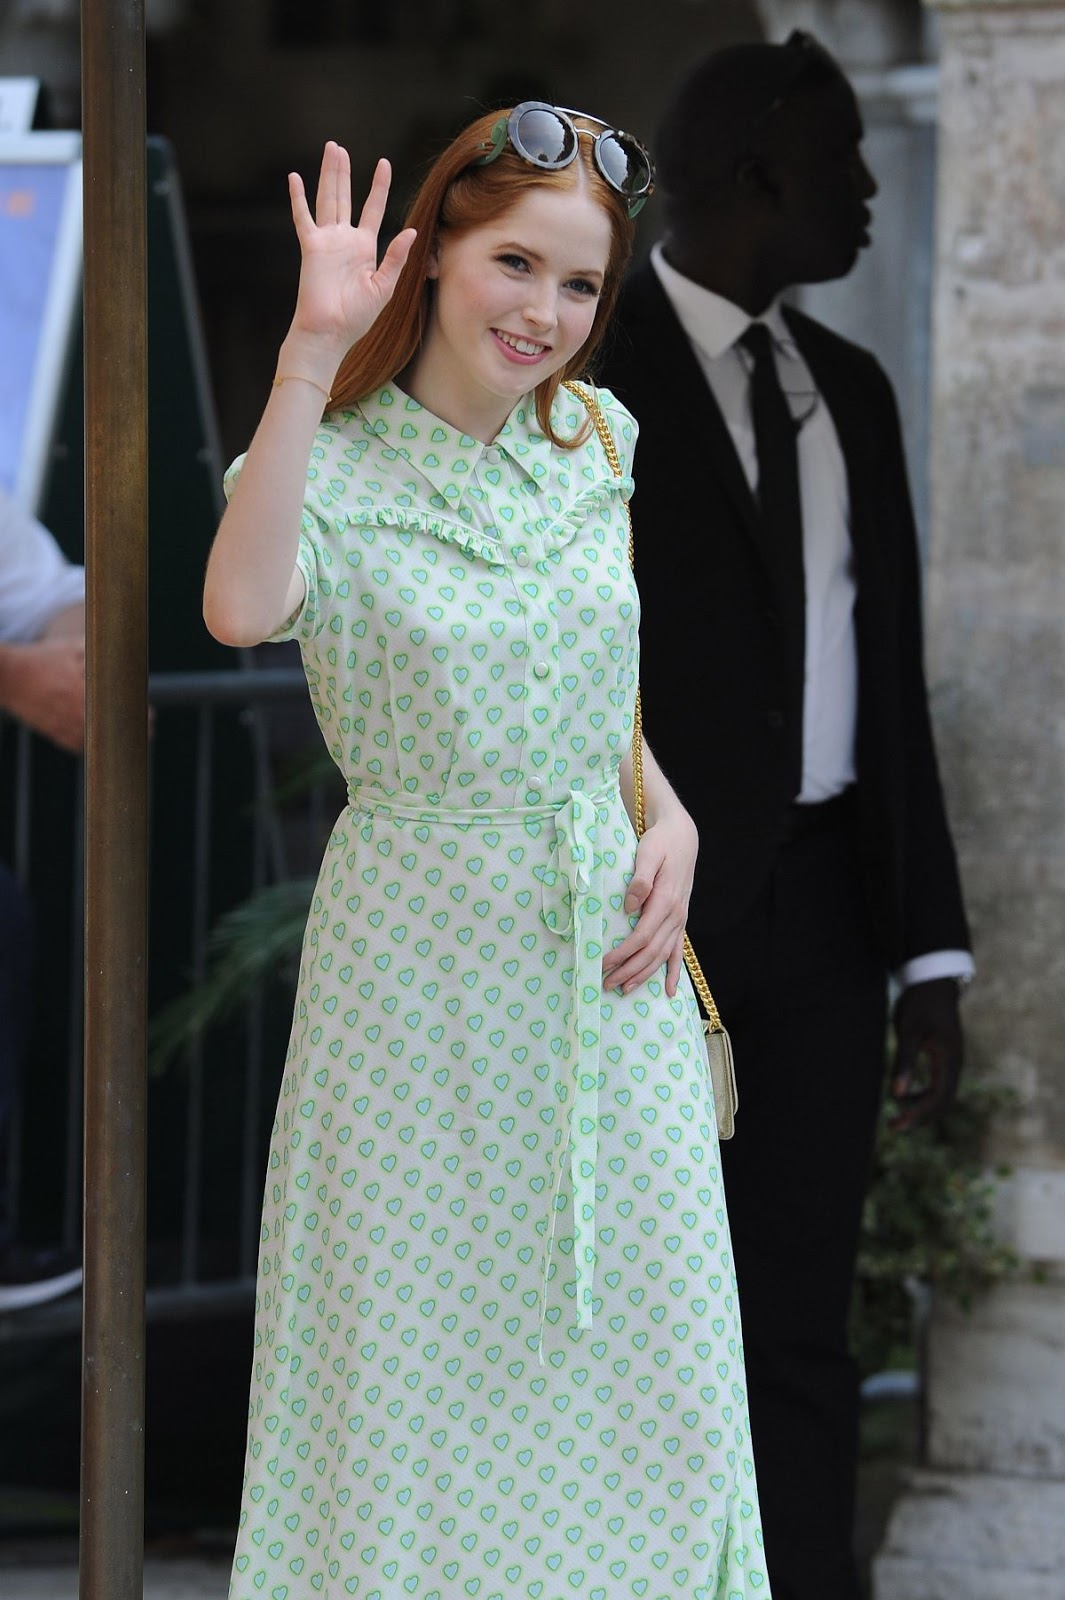 Full HD Photos of Ellie Bamber Arrives At Lido at Venice Film Festival, In Venice